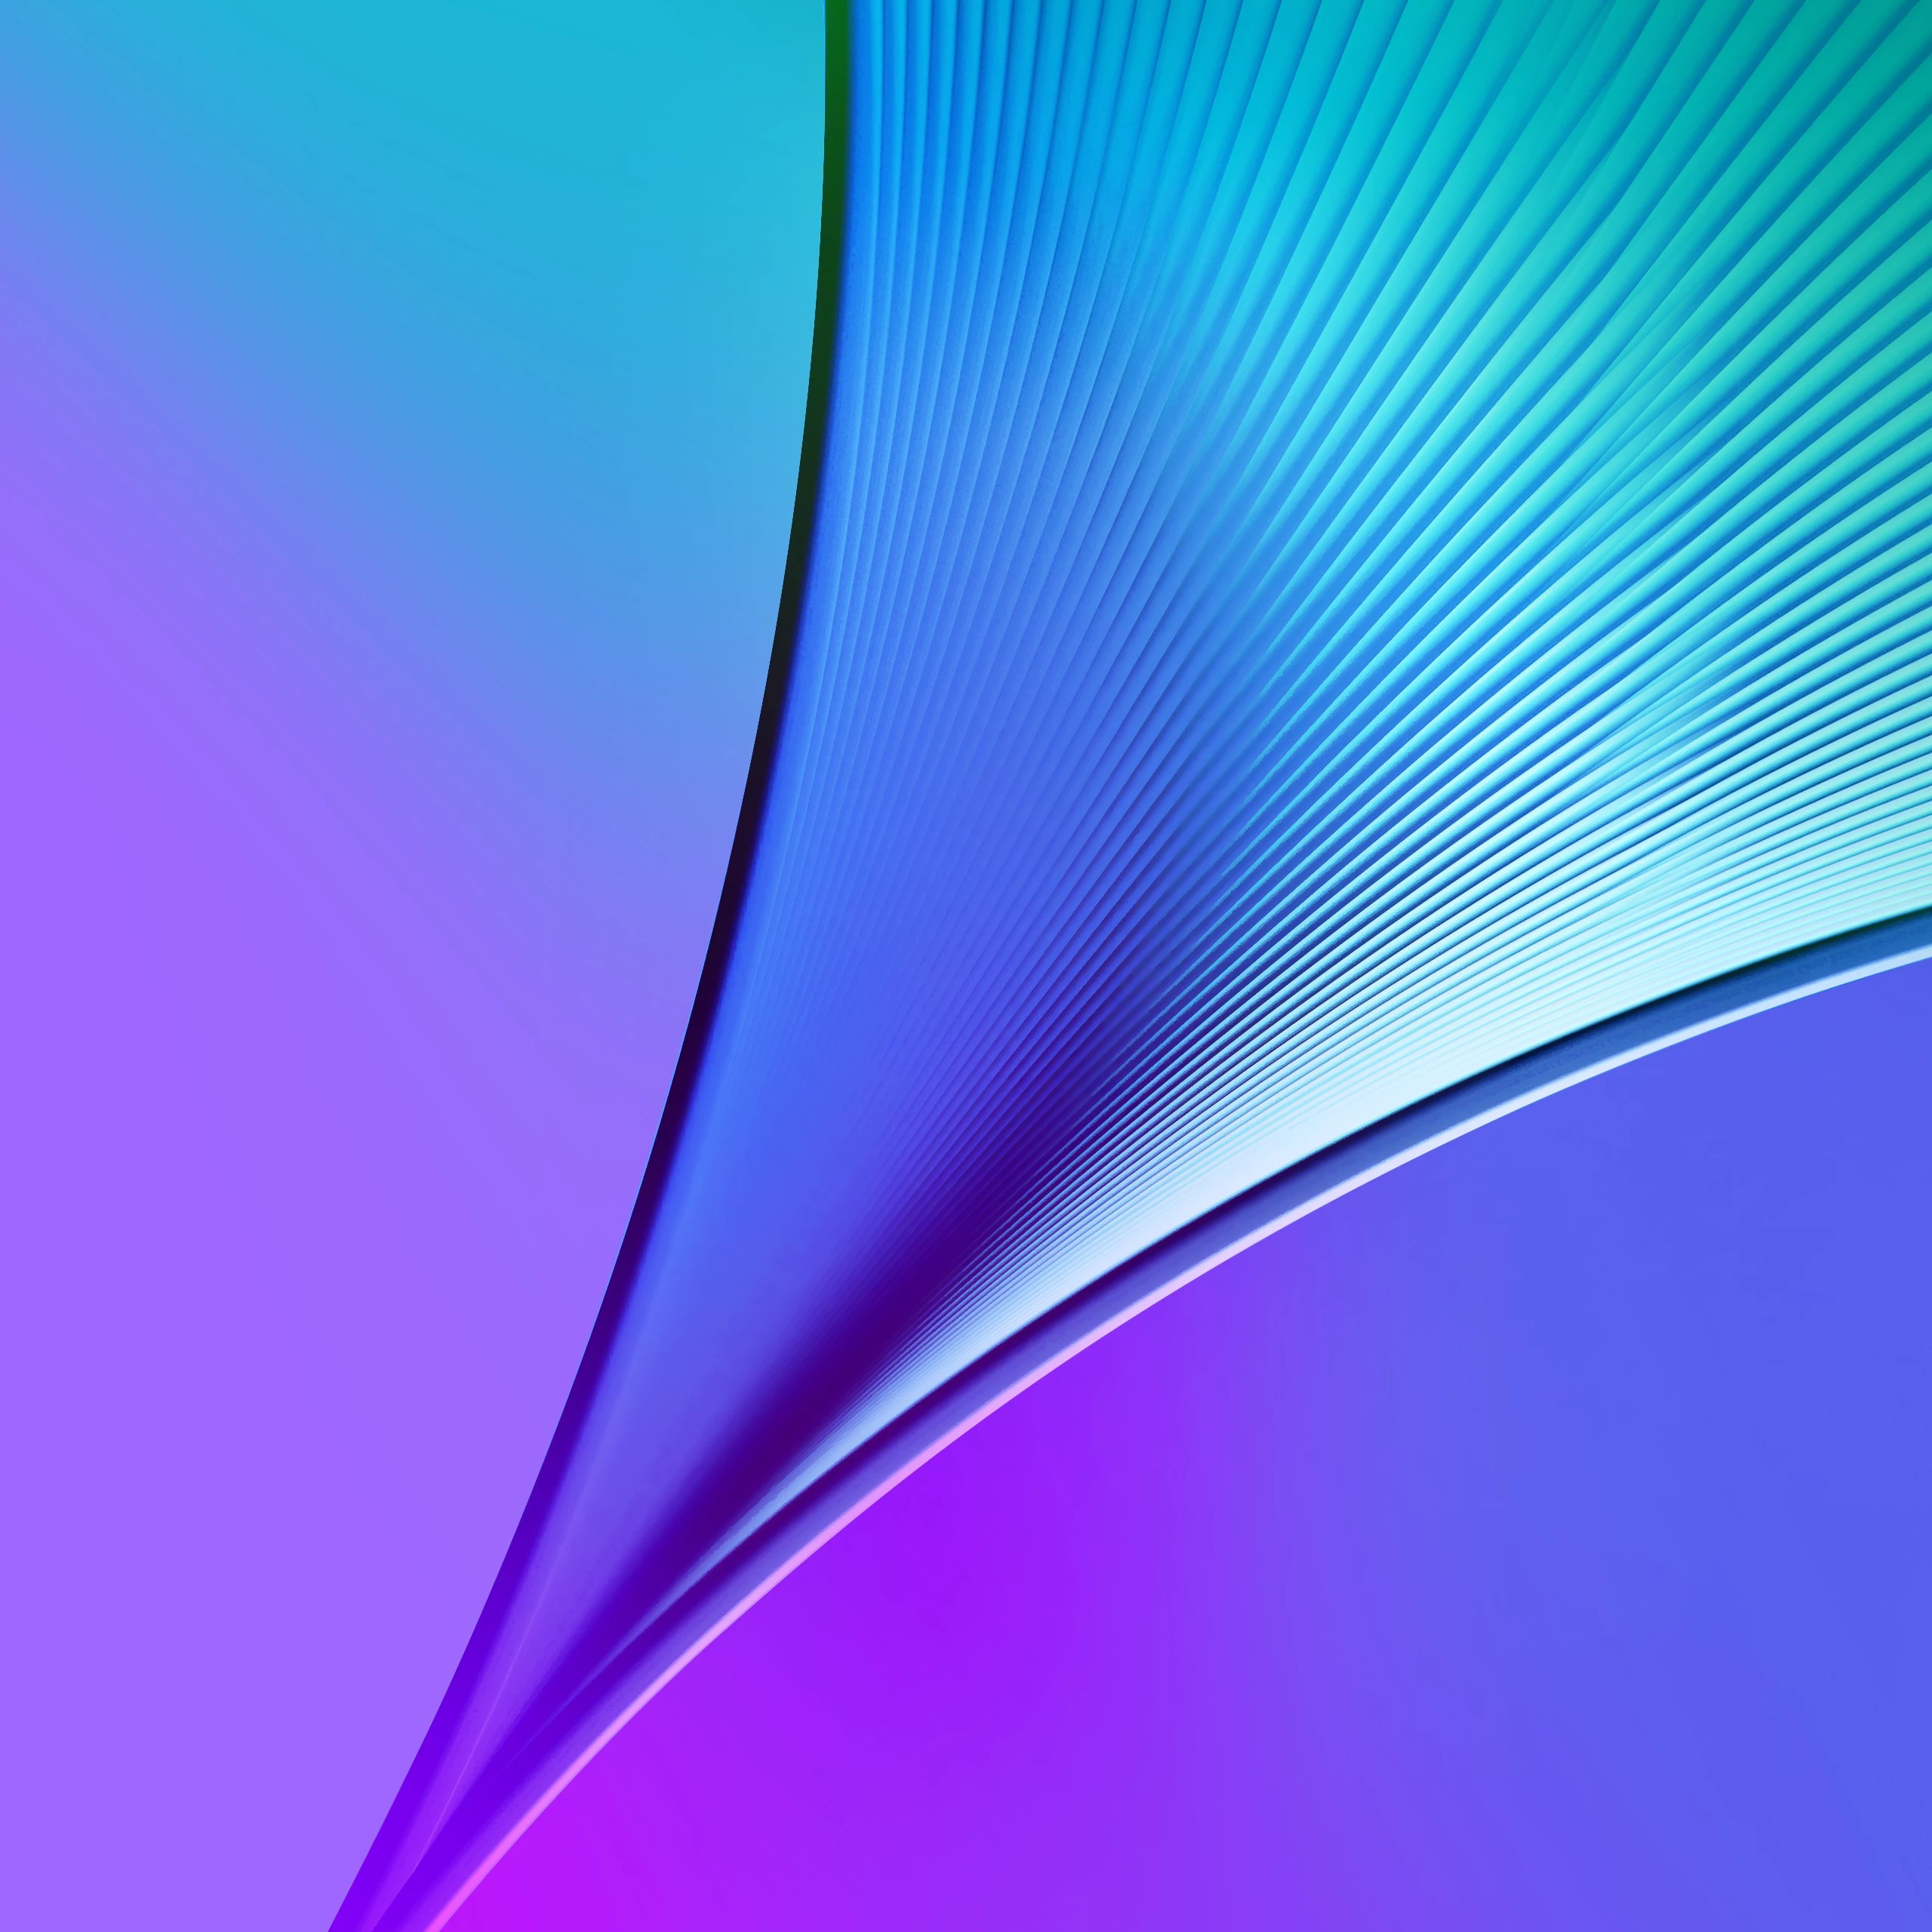 Samsung Galaxy Note 5 Stock Wallpapers 2